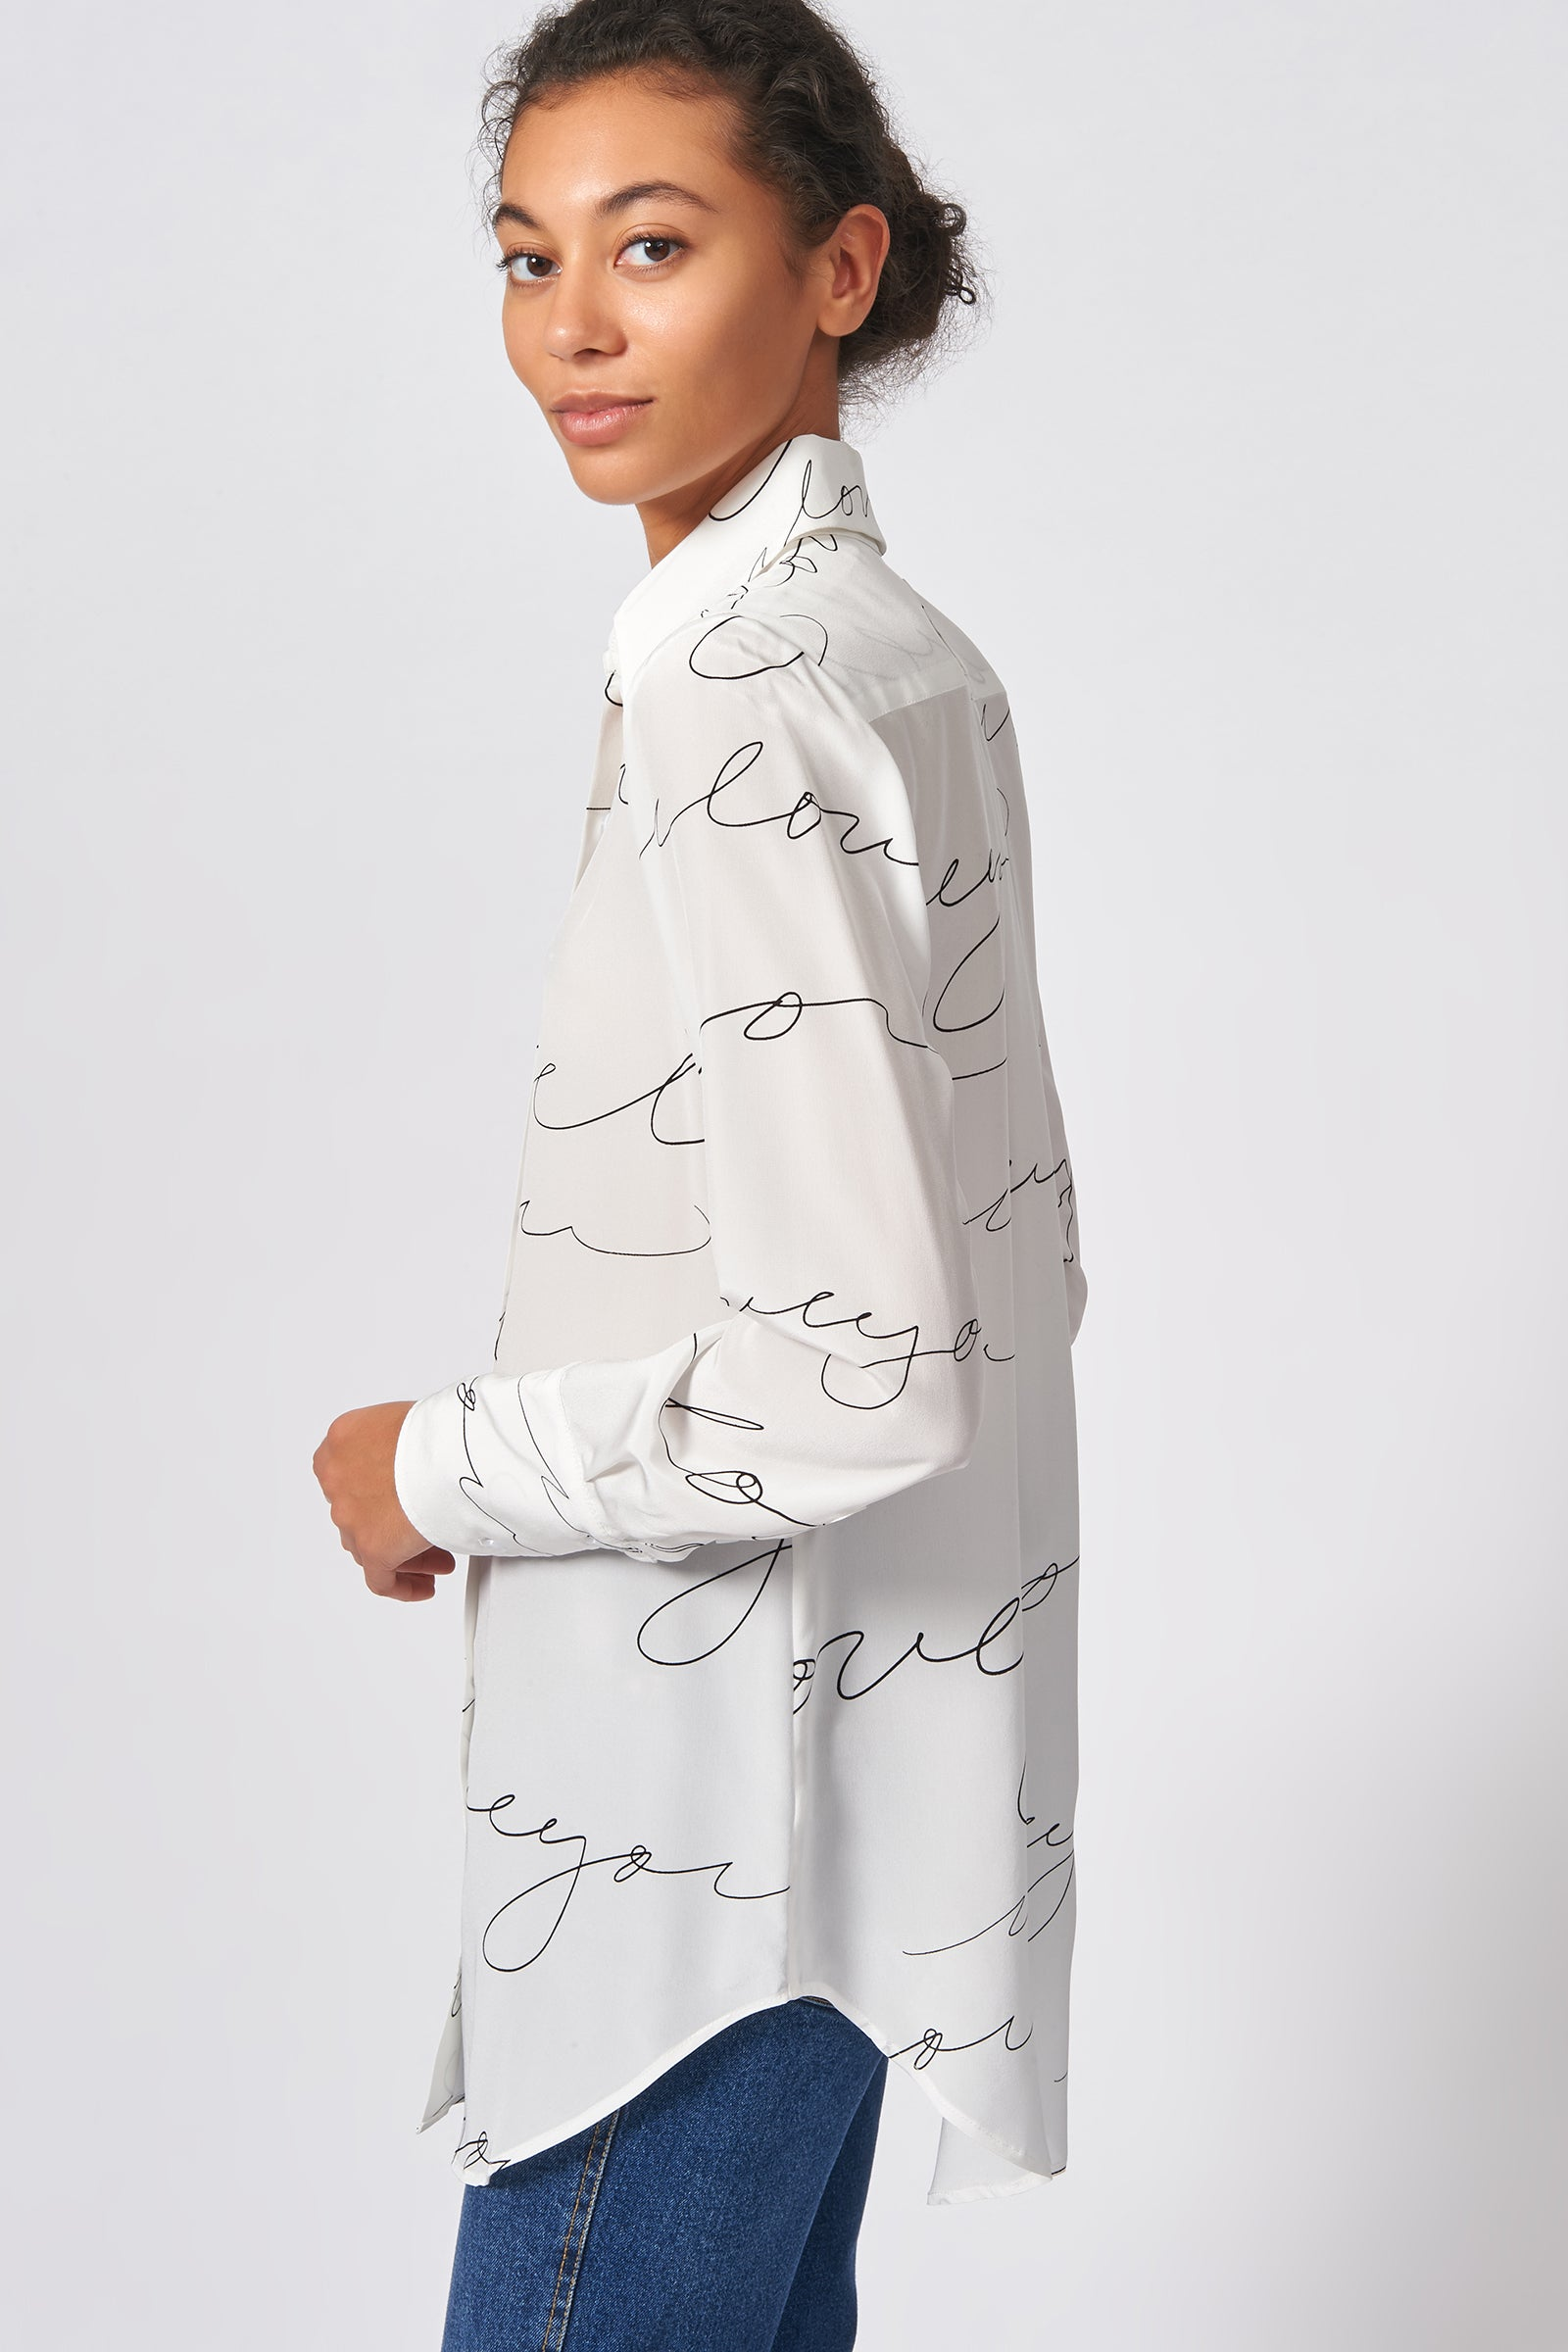 Kal Rieman Shirt Tail Tunic in Ivory I Love You Print on Model Side View